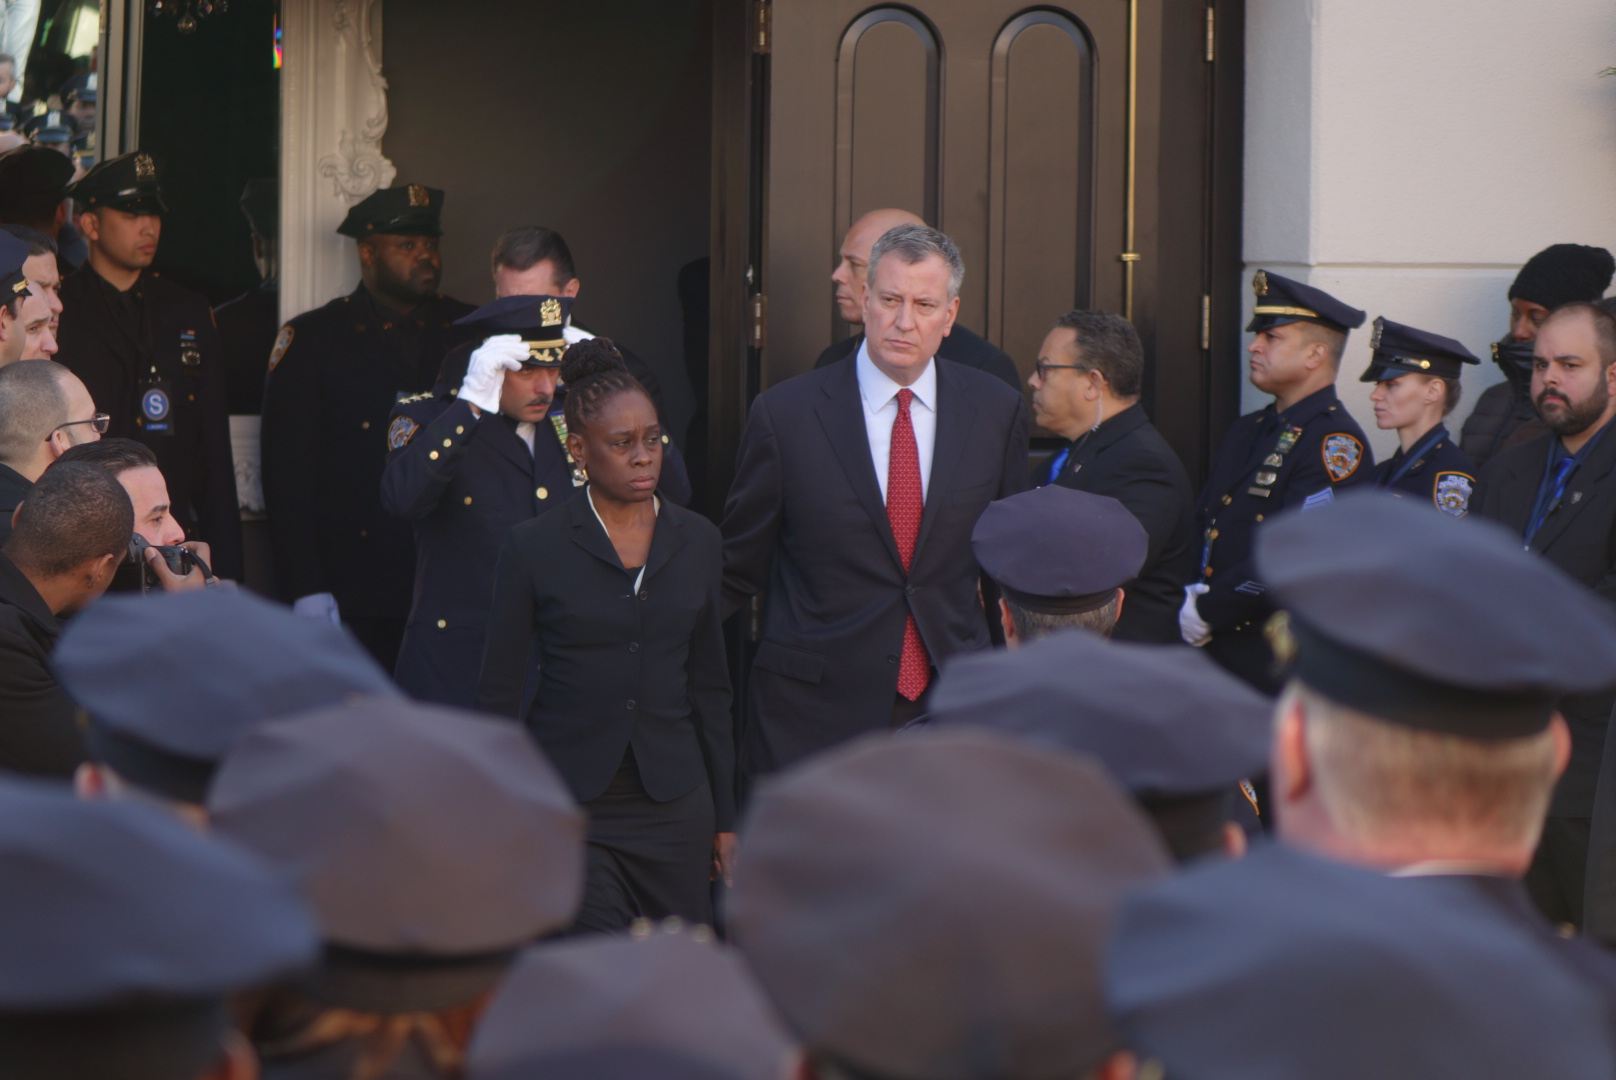 Mayor Bill de Blasio and wife Chirlane McCray leave the church.